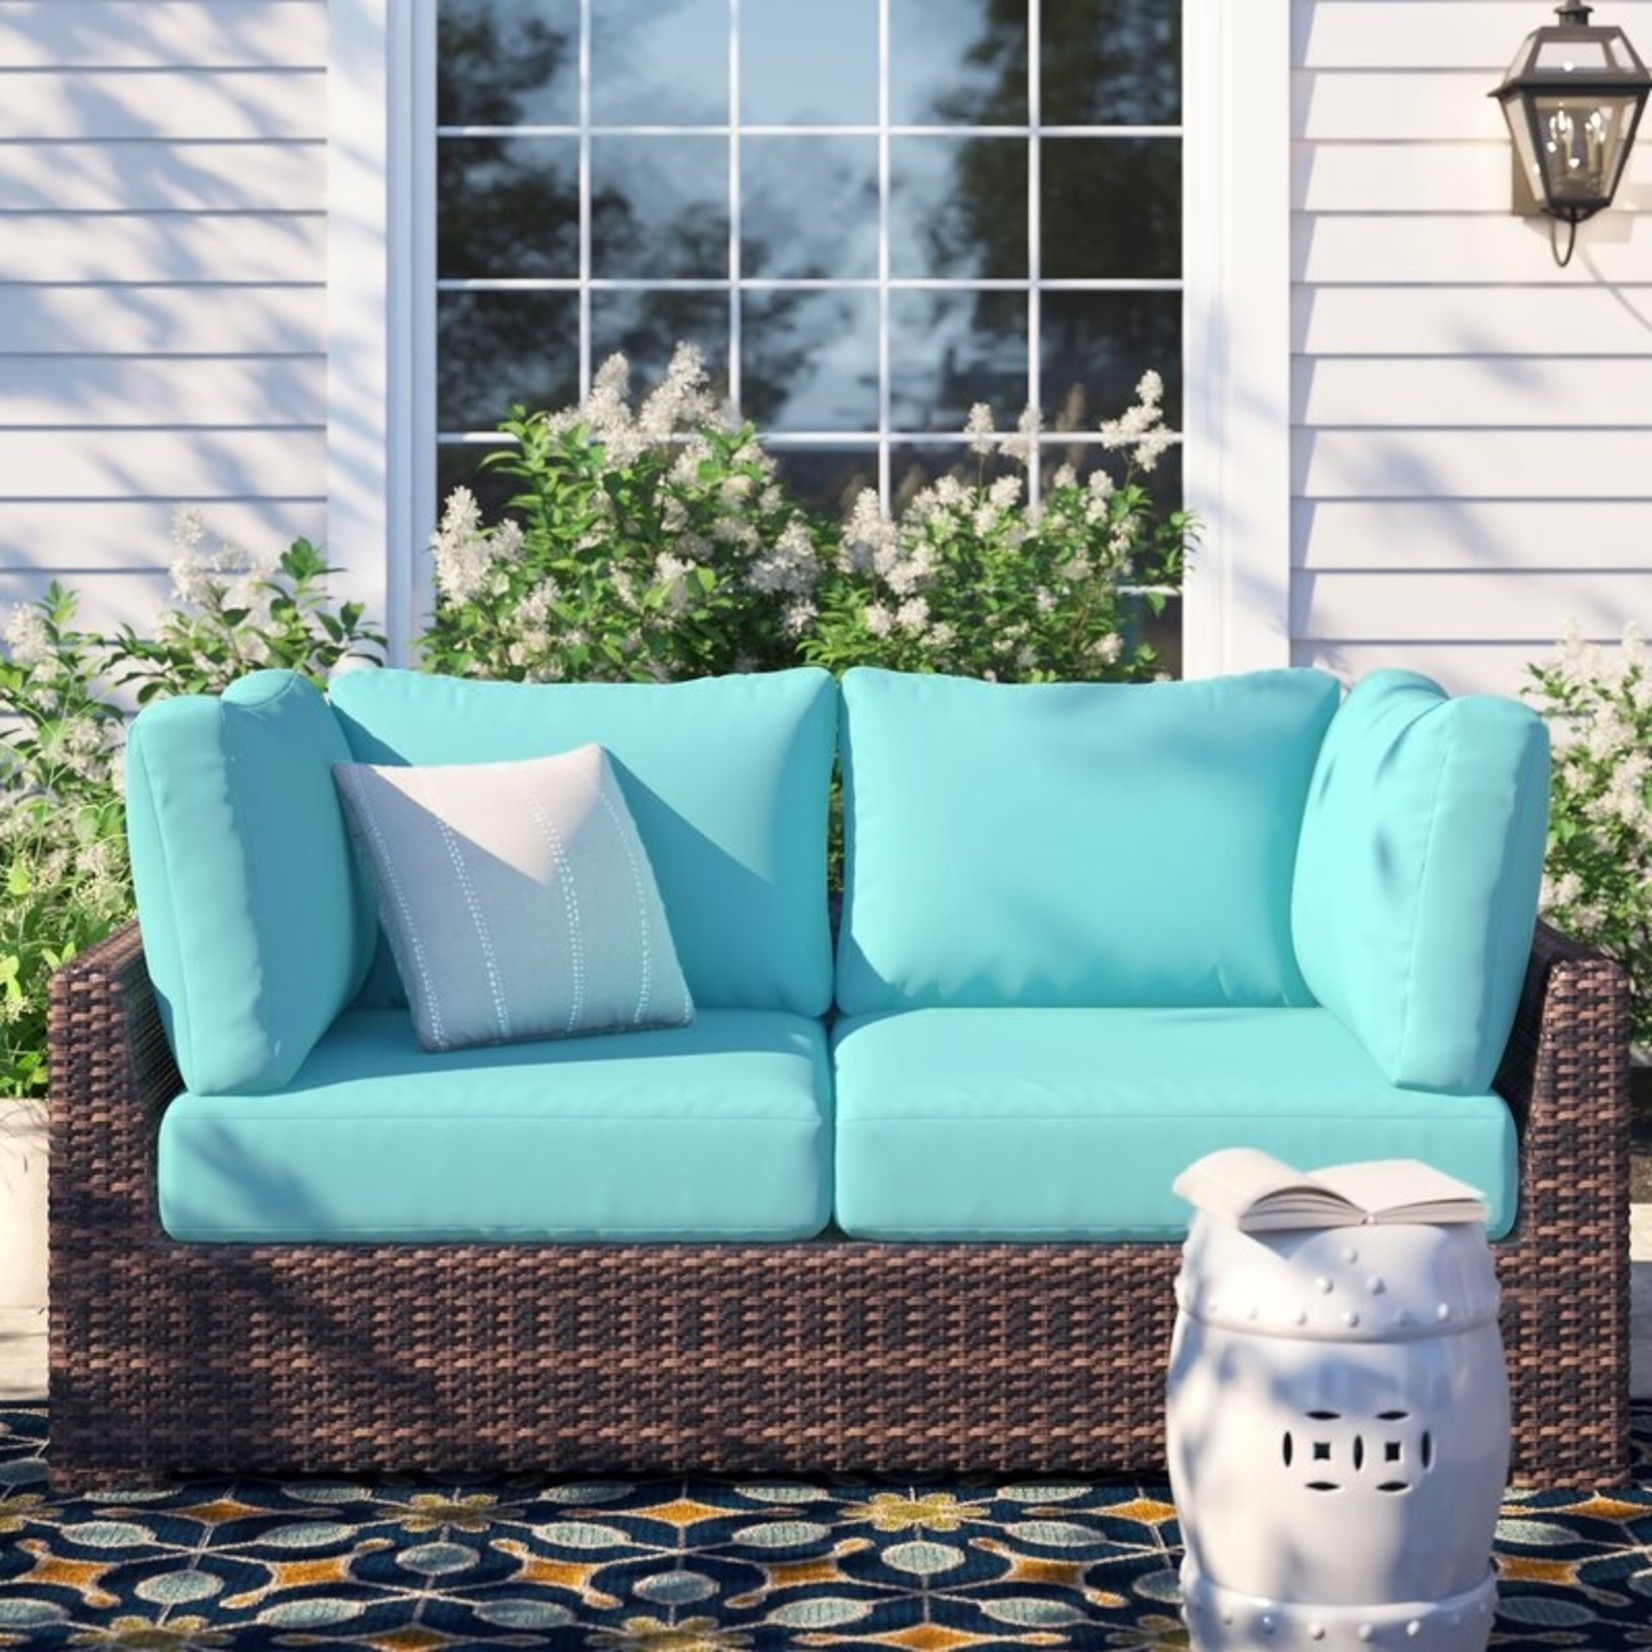 *Waterbury 6 Piece Indoor/Outdoor High Back Cushion Cover Set- Aruba - Covers Only - Final Sale